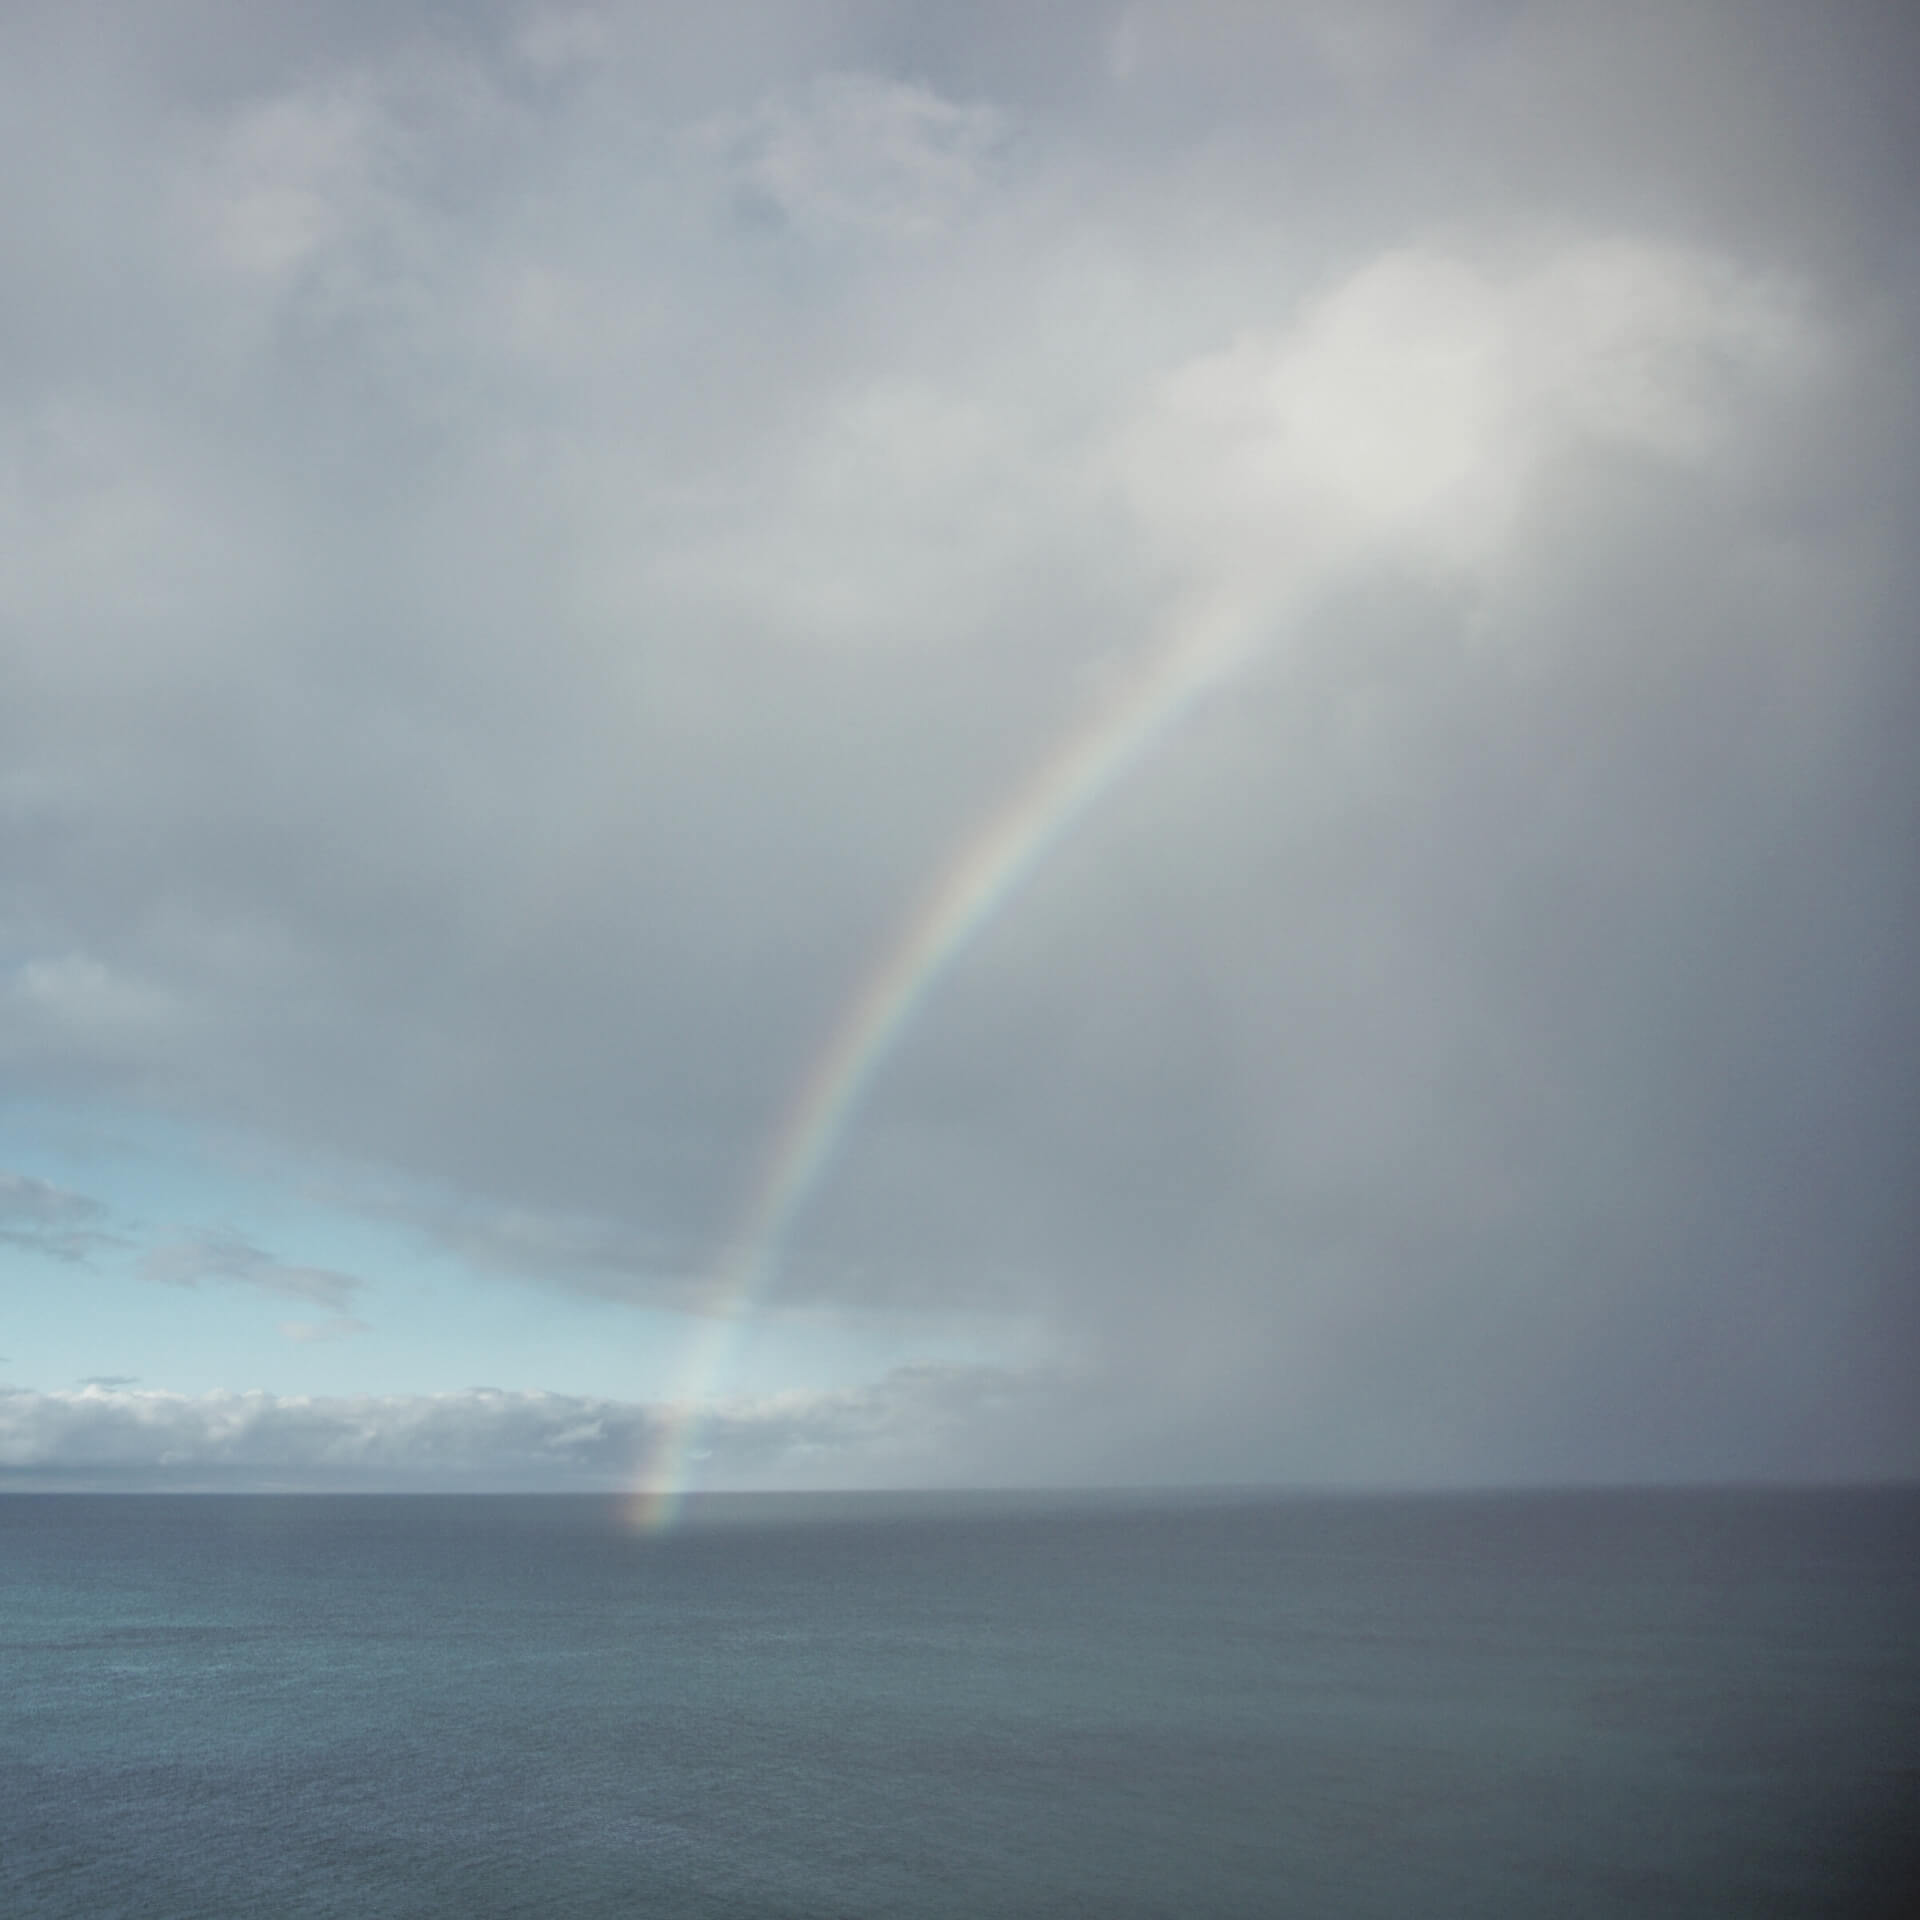 Branding for small business: Rainbow over the ocean